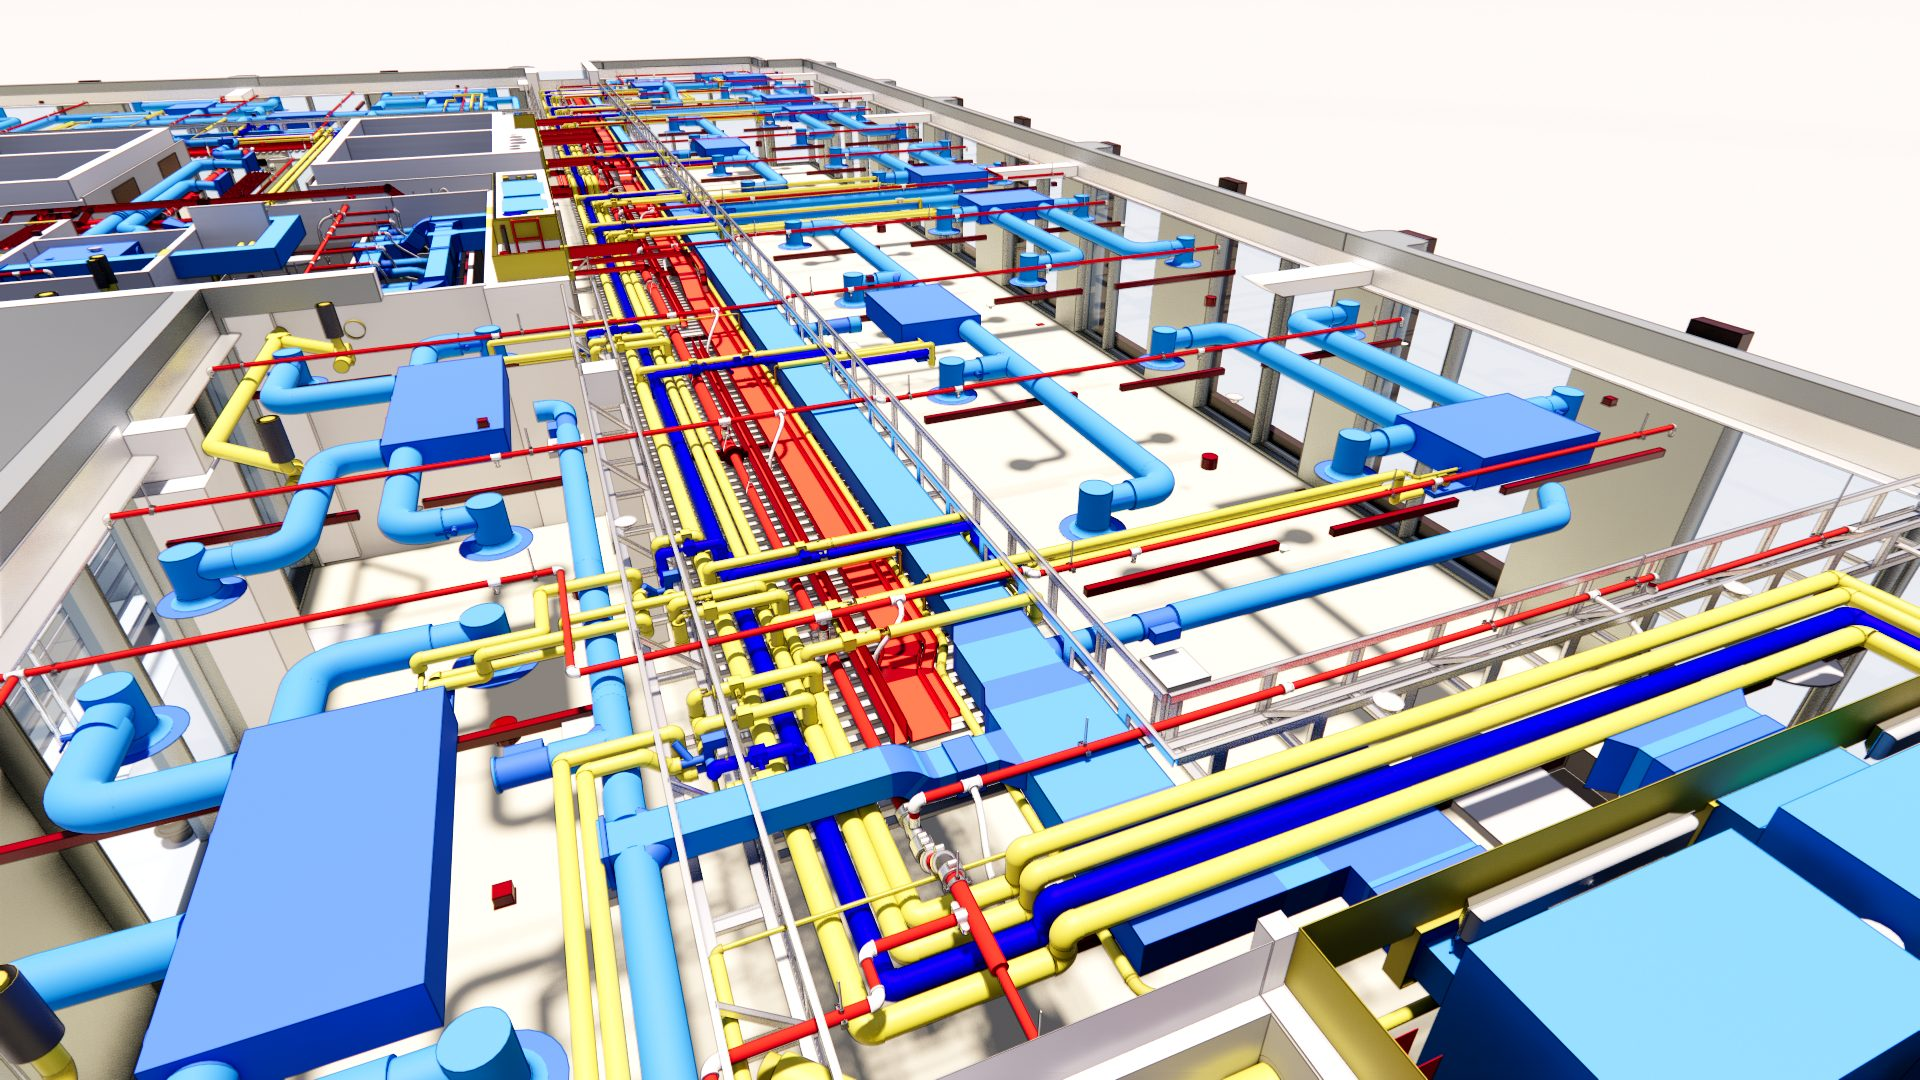 Rendering of pipes from above